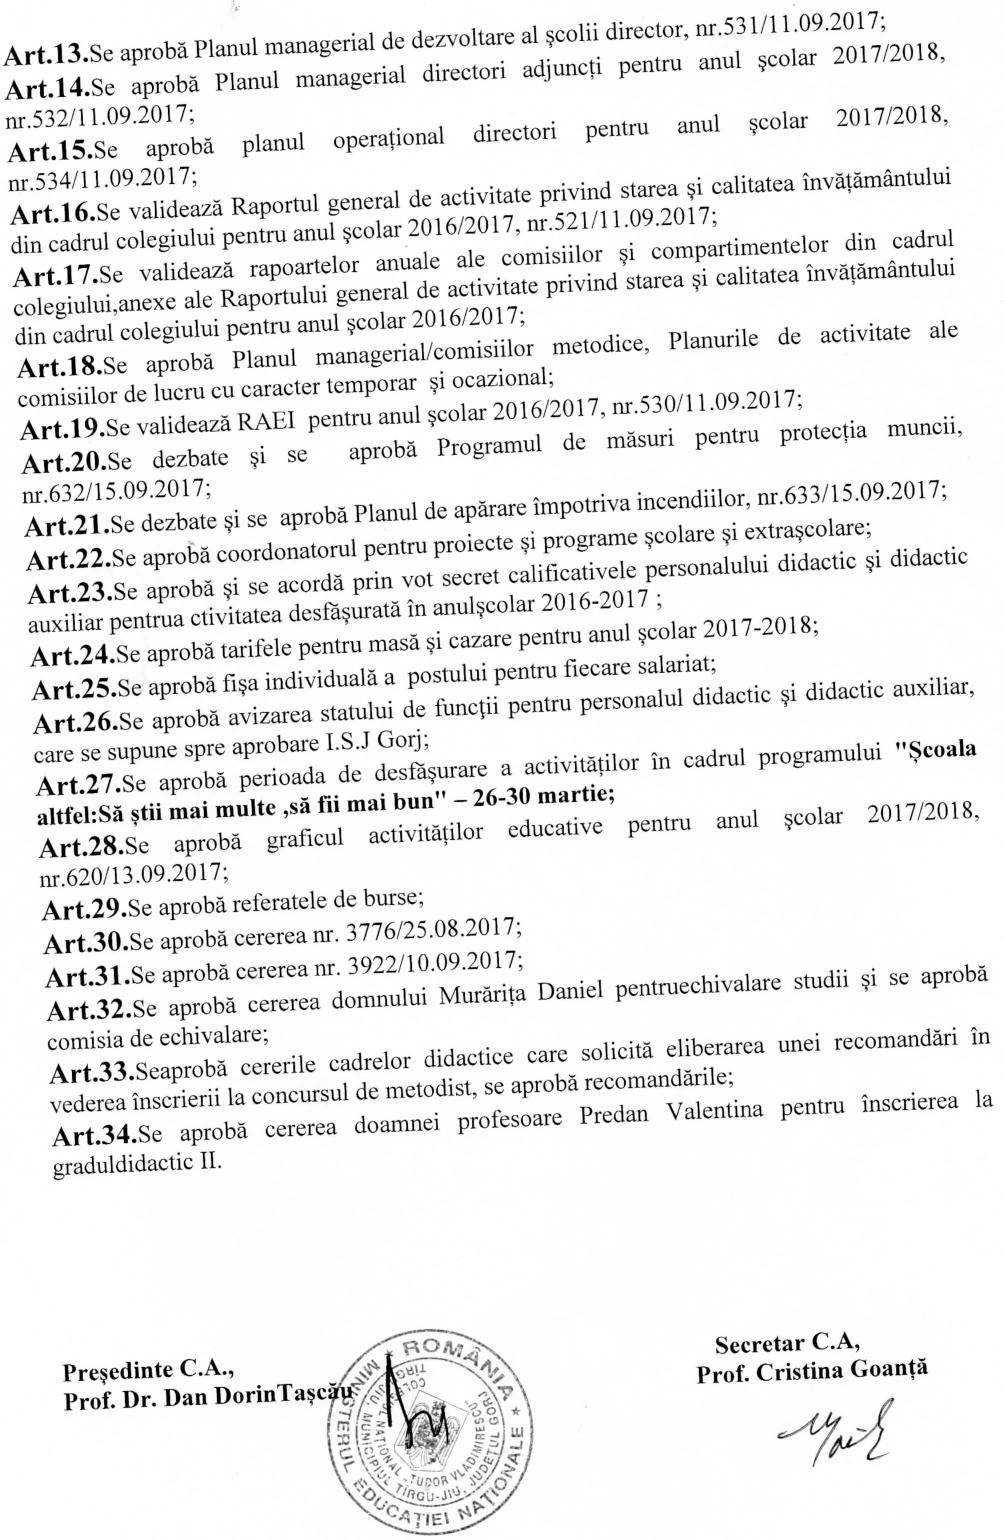 img167-page-001